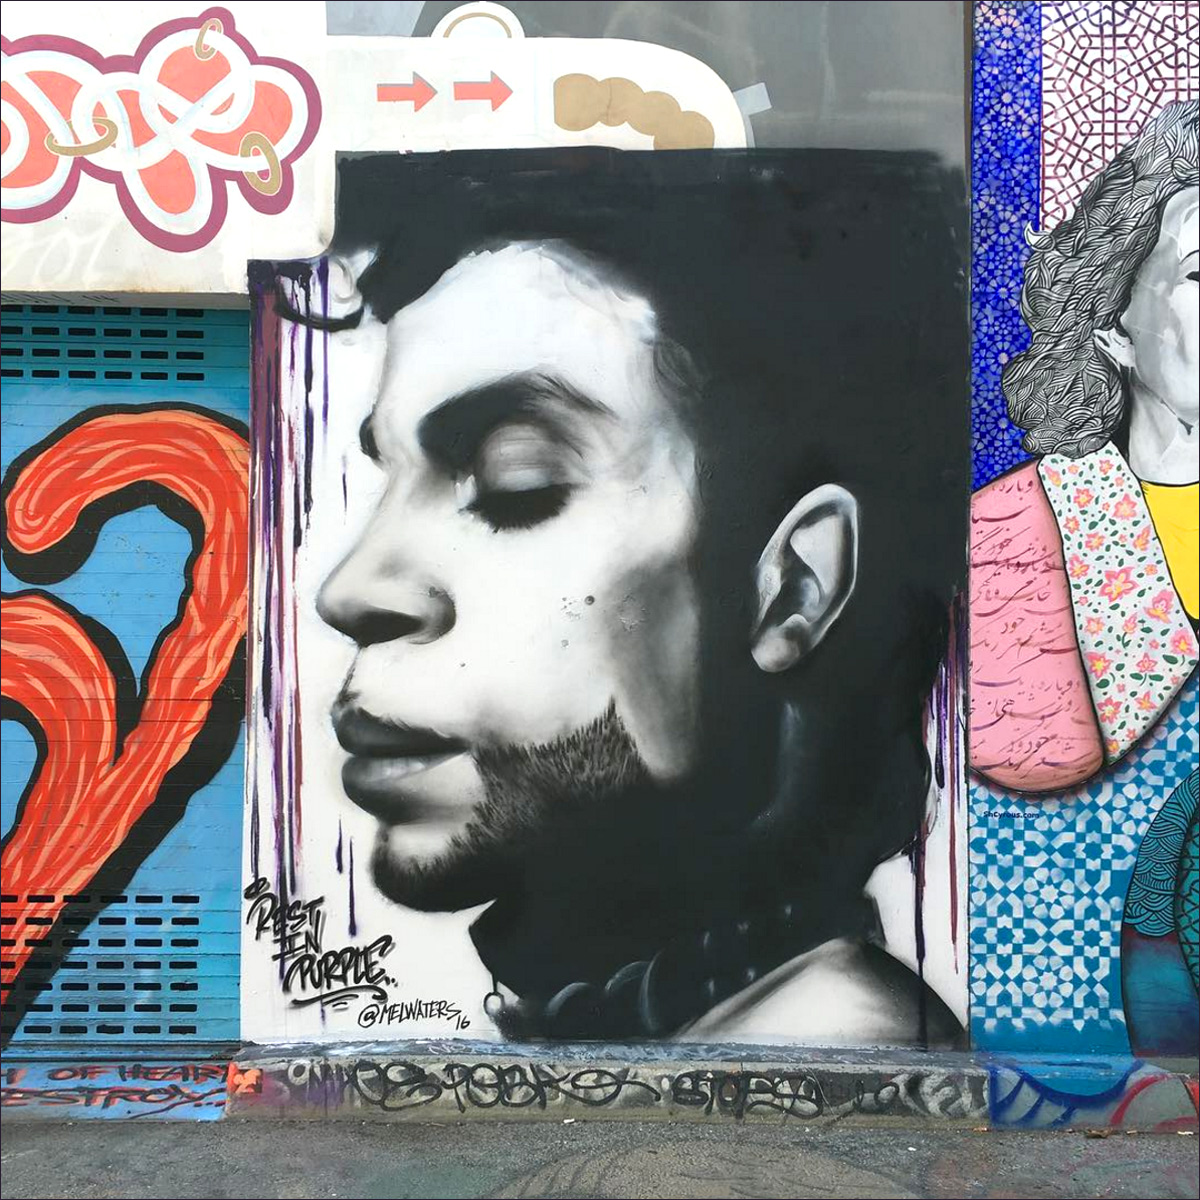 New prince mural by mel c waters on clarion alley for Clarion alley mural project